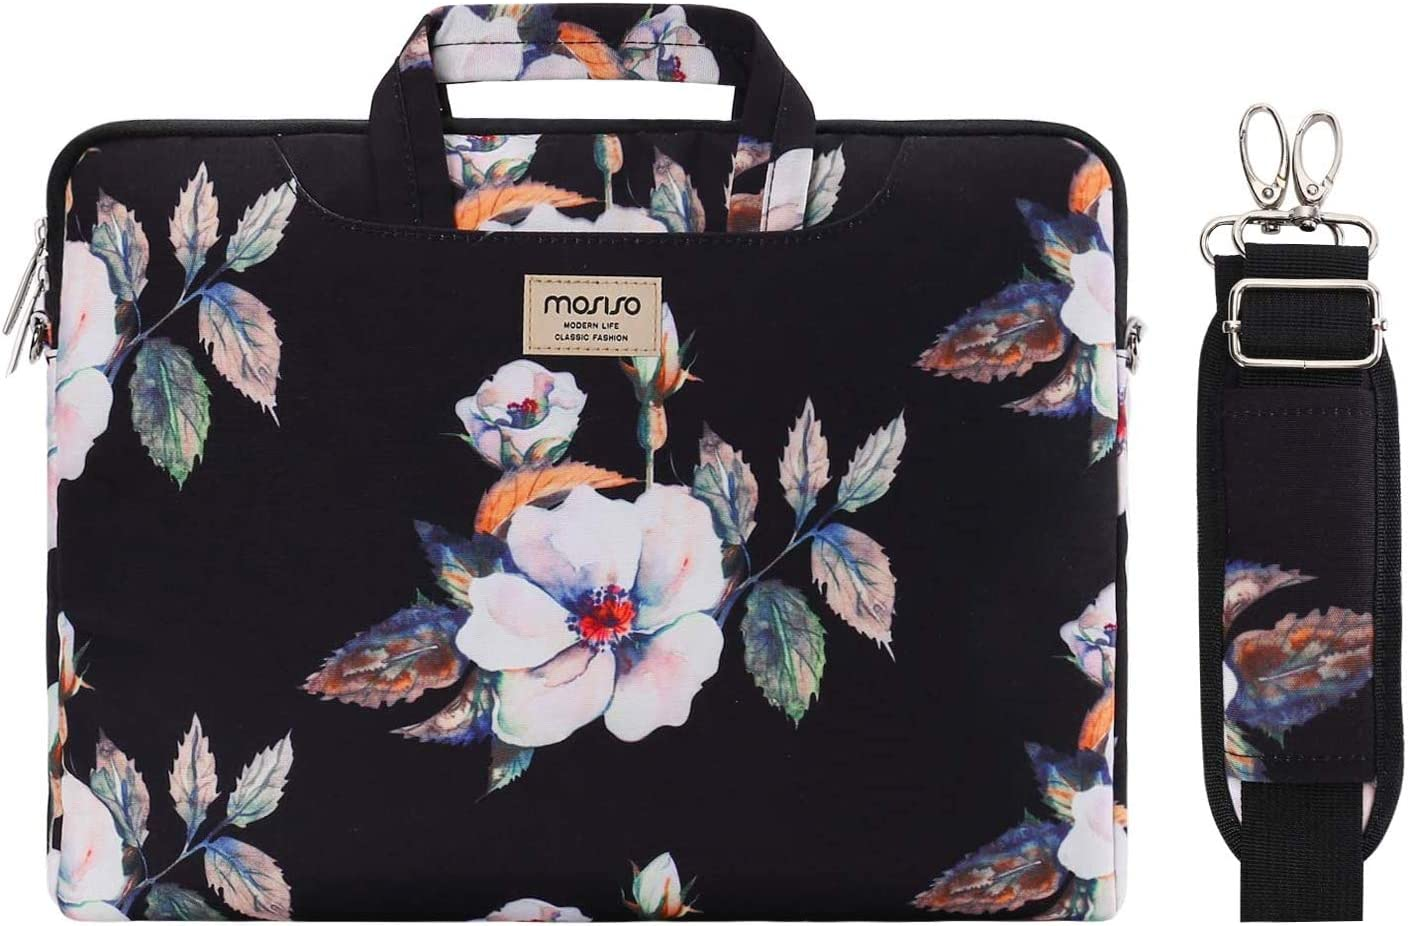 MOSISO Laptop Shoulder Bag Compatible with MacBook Pro 16 inch A2141/Pro Retina A1398, 15-15.6 inch Notebook, Hibiscus Carrying Briefcase Sleeve Case with Trolley Belt